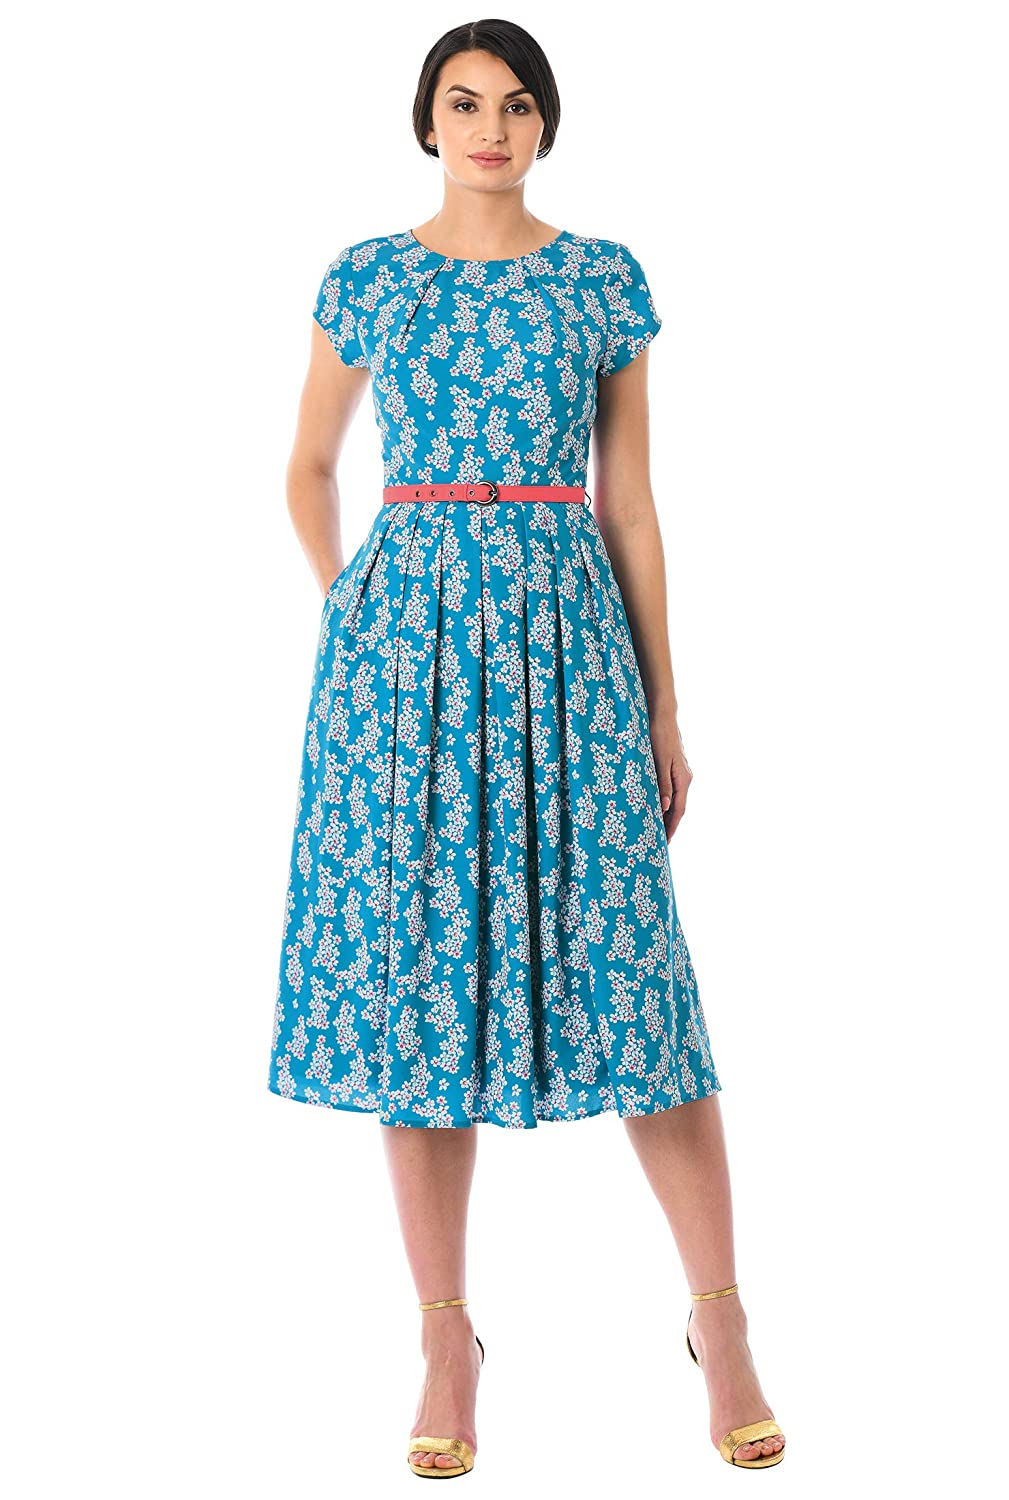 1940s Dresses | 40s Dress, Swing Dress eShakti FX Pleat Neck Belted Floral Print Crepe Dress $64.95 AT vintagedancer.com